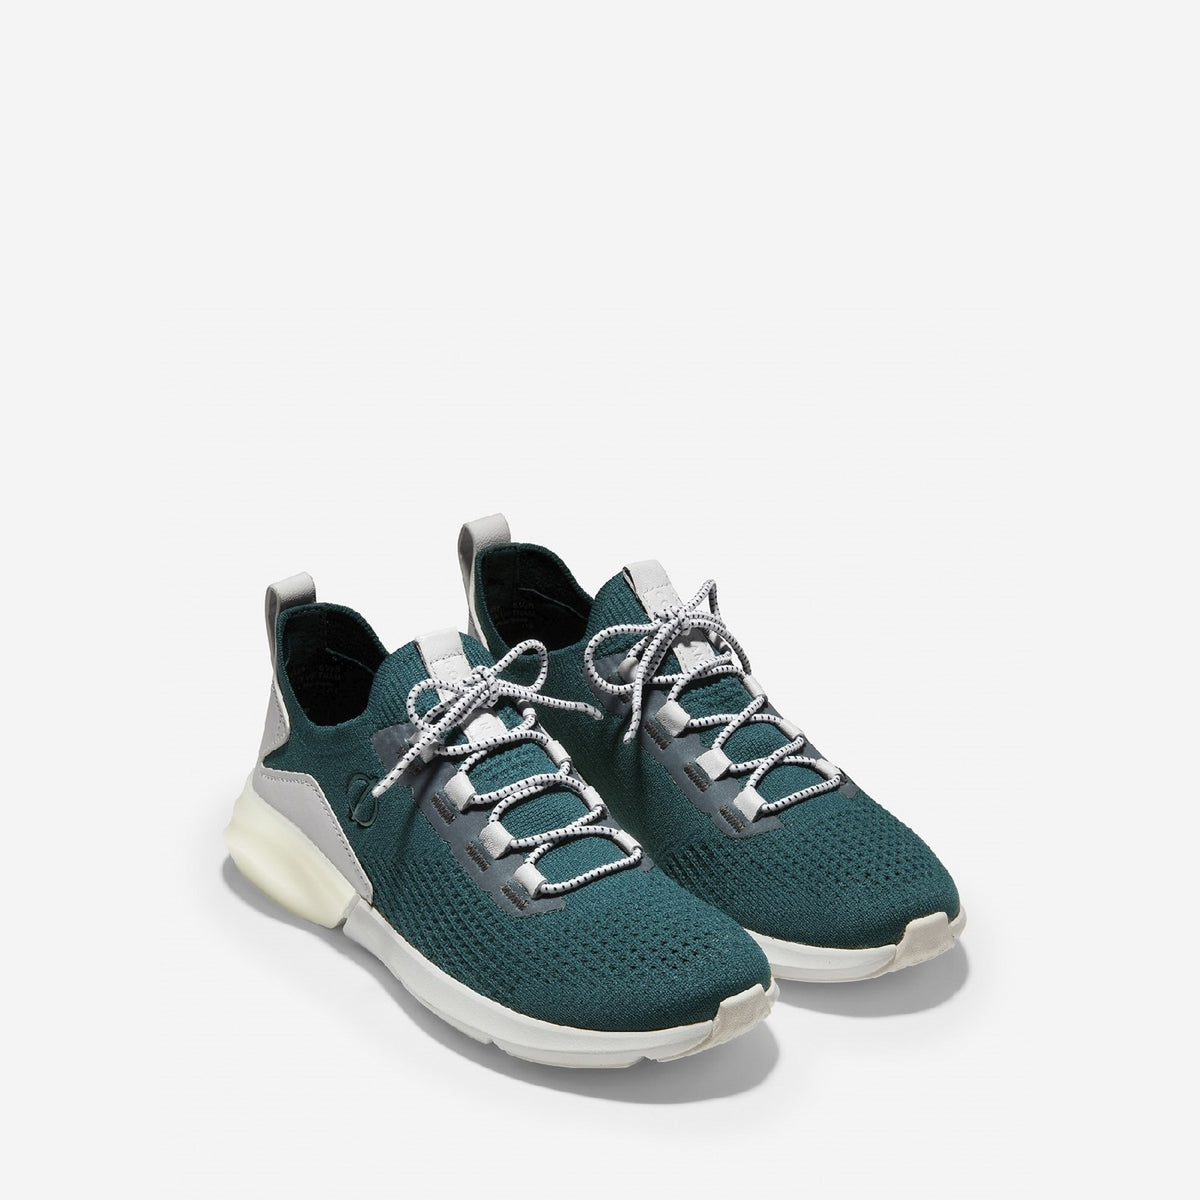 Women's ZERØGRAND All-Day Lace Up Runner Deep Teal/Optic